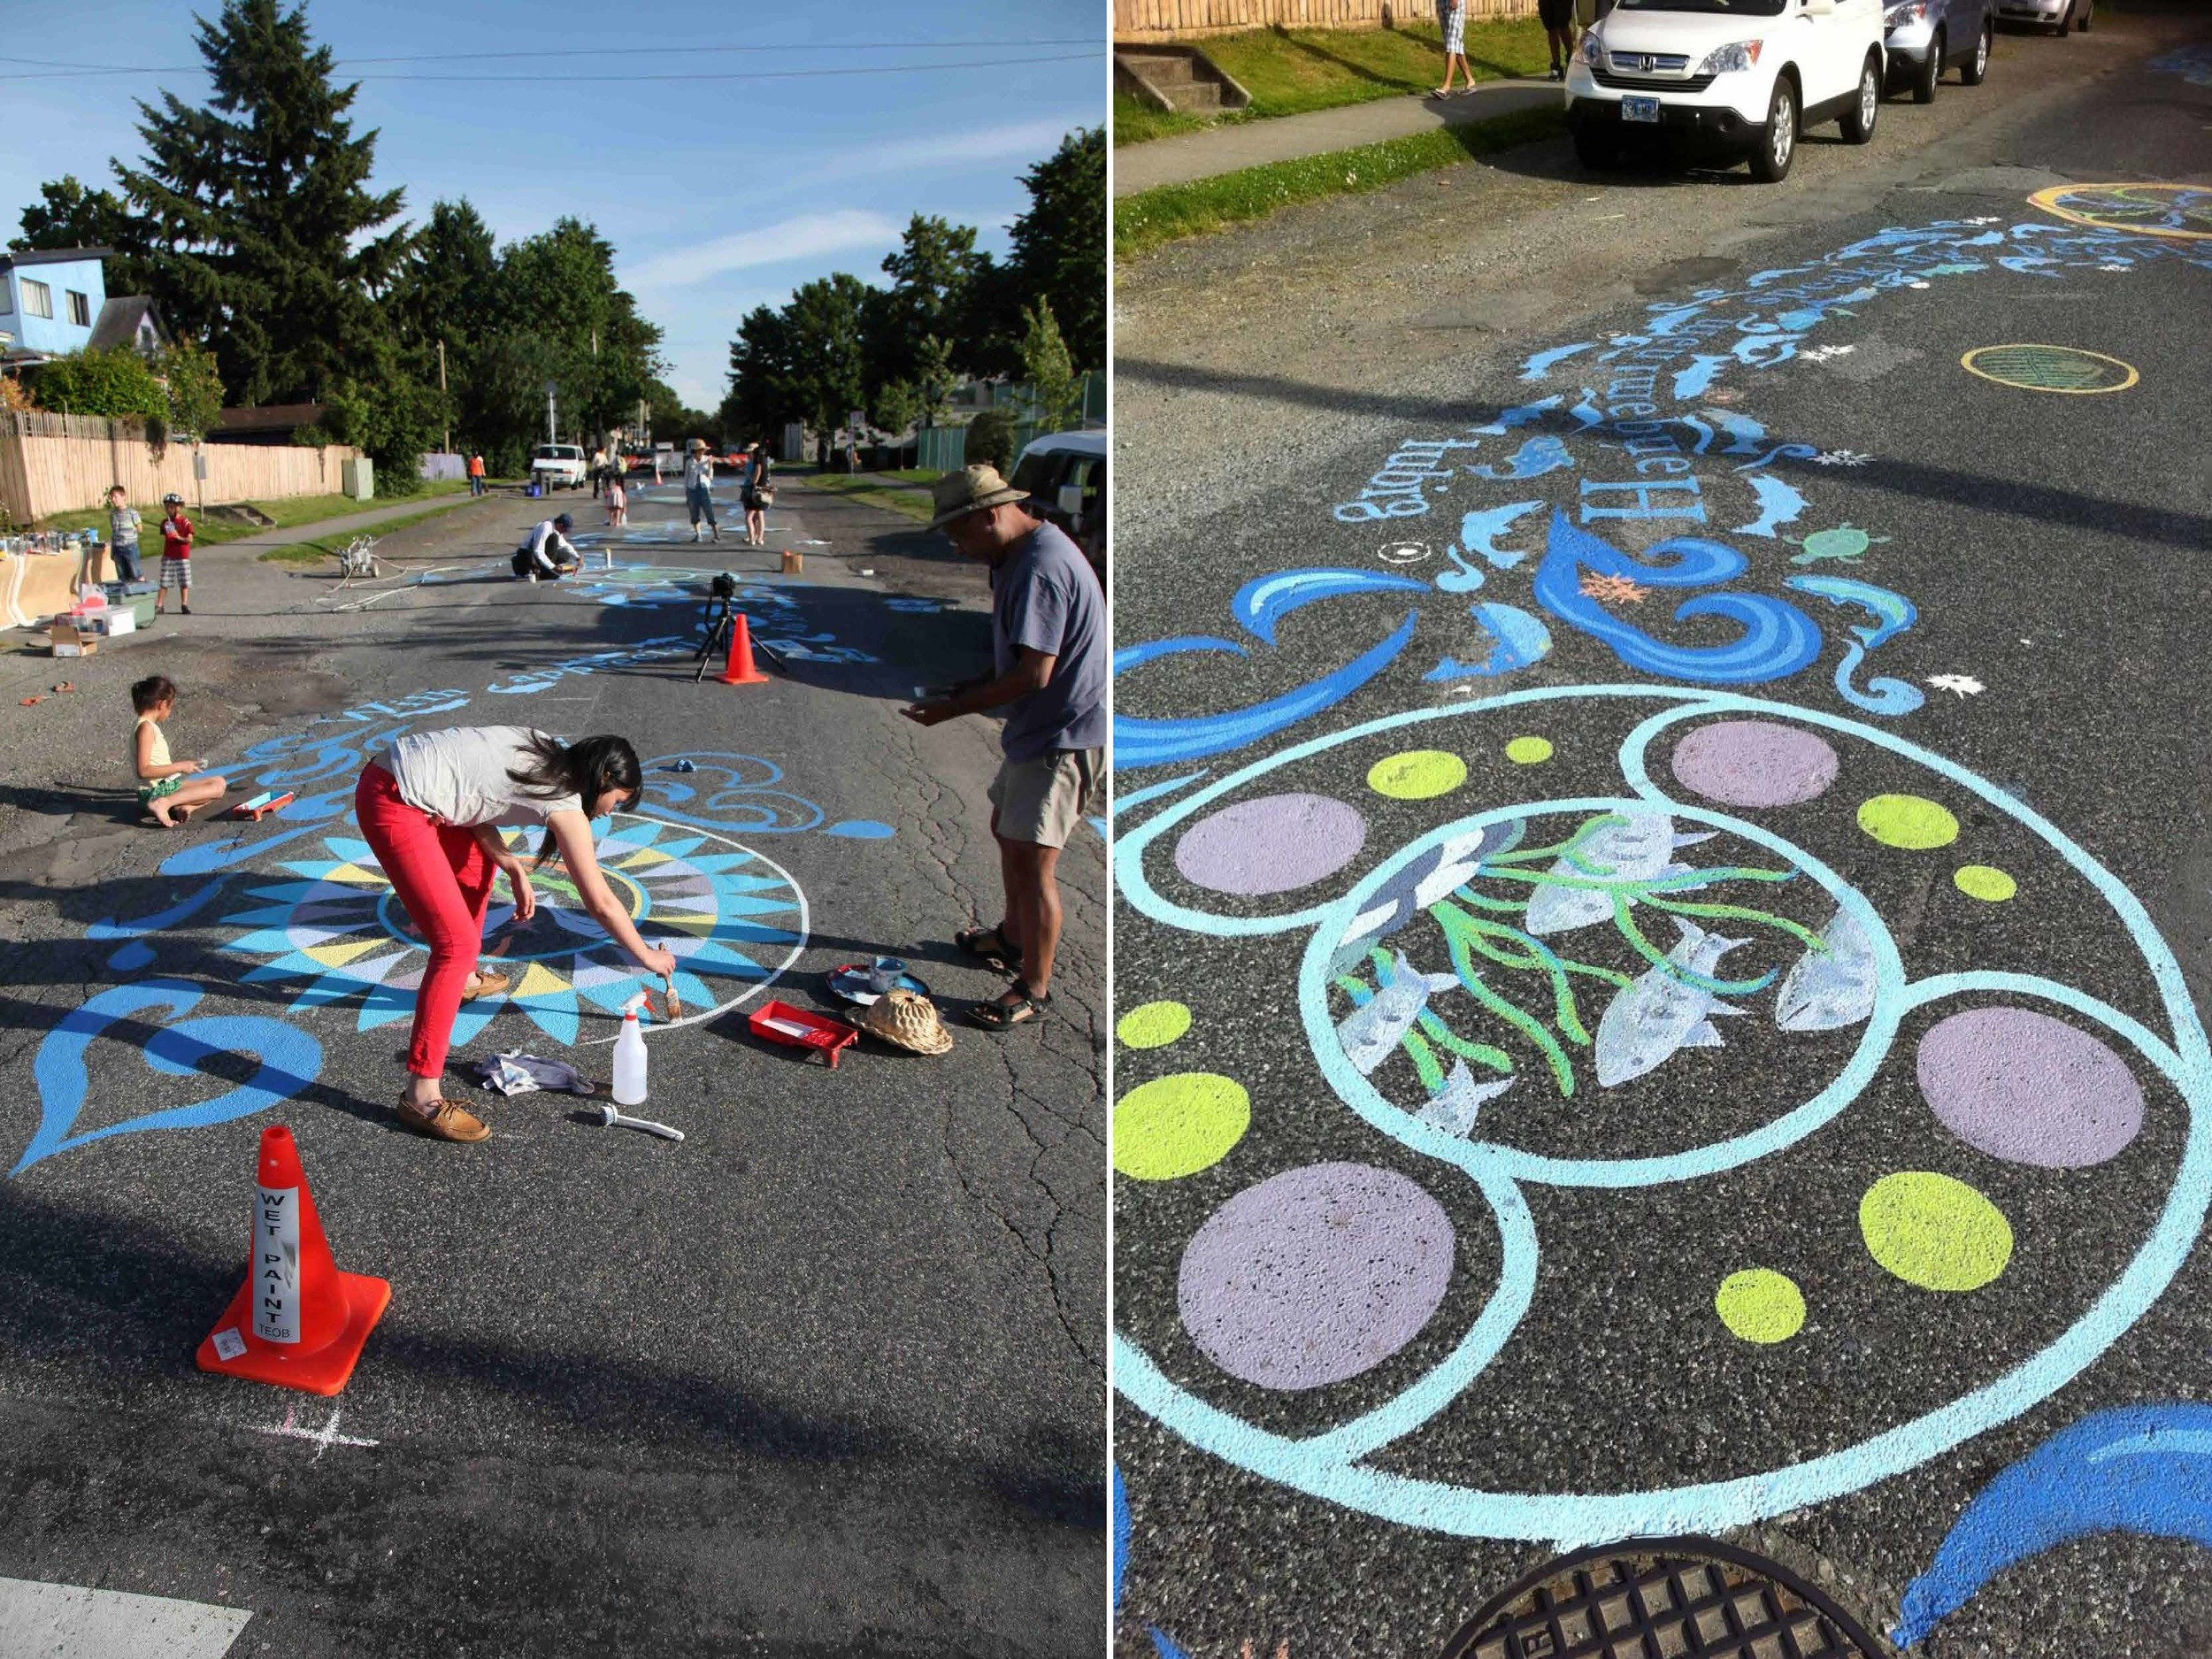 With participation by the children and other members of the community, the Rainway painted a mural along one block of St. George Street, by Mt Pleasant Elementary school in June of 2012.  The mural highlights the life cycle of salmon and includes the words for water in languages spoken by neighbours.